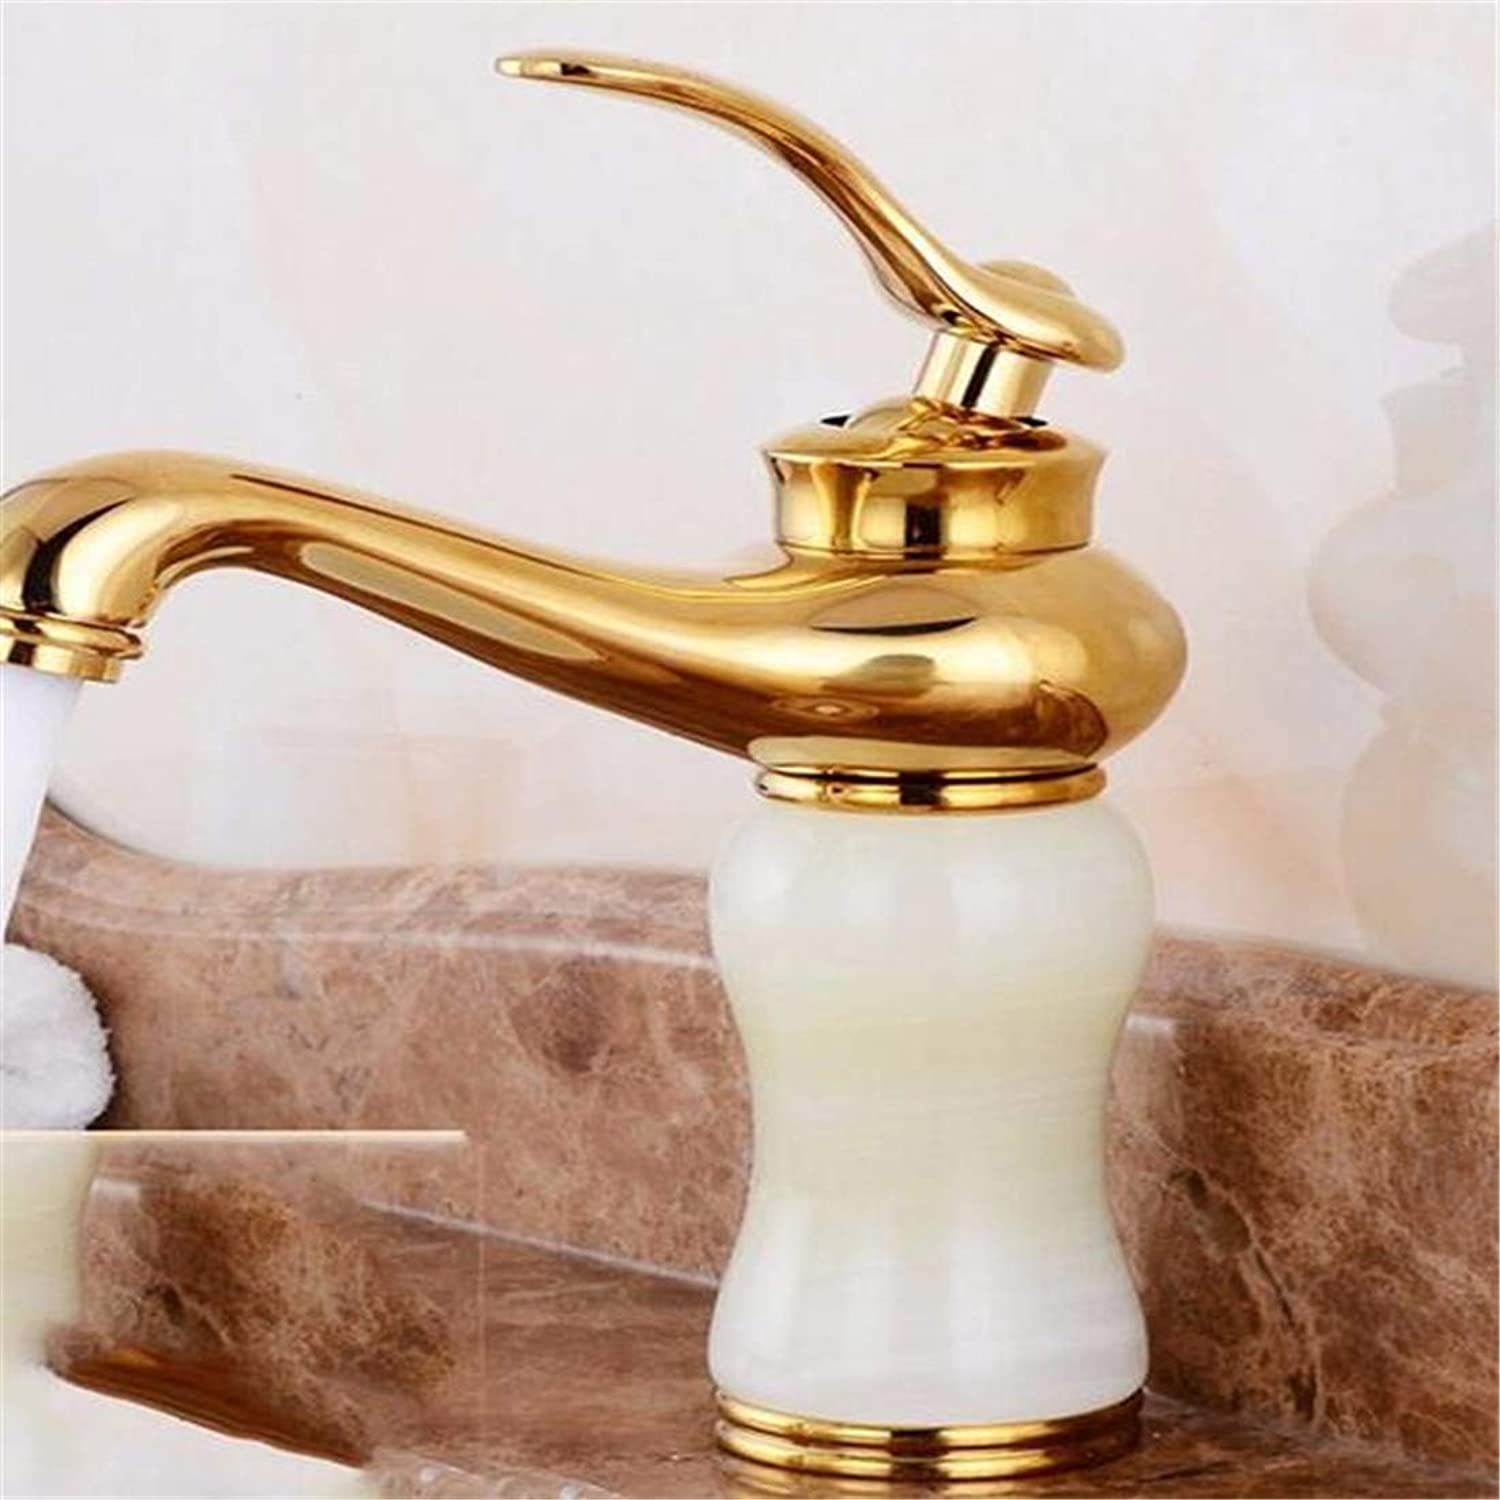 Chrome Kitchen Sink Tap Sink Mixer Tap Faucet Modern Copper Hot and Cold Basin gold Plated Water Tap